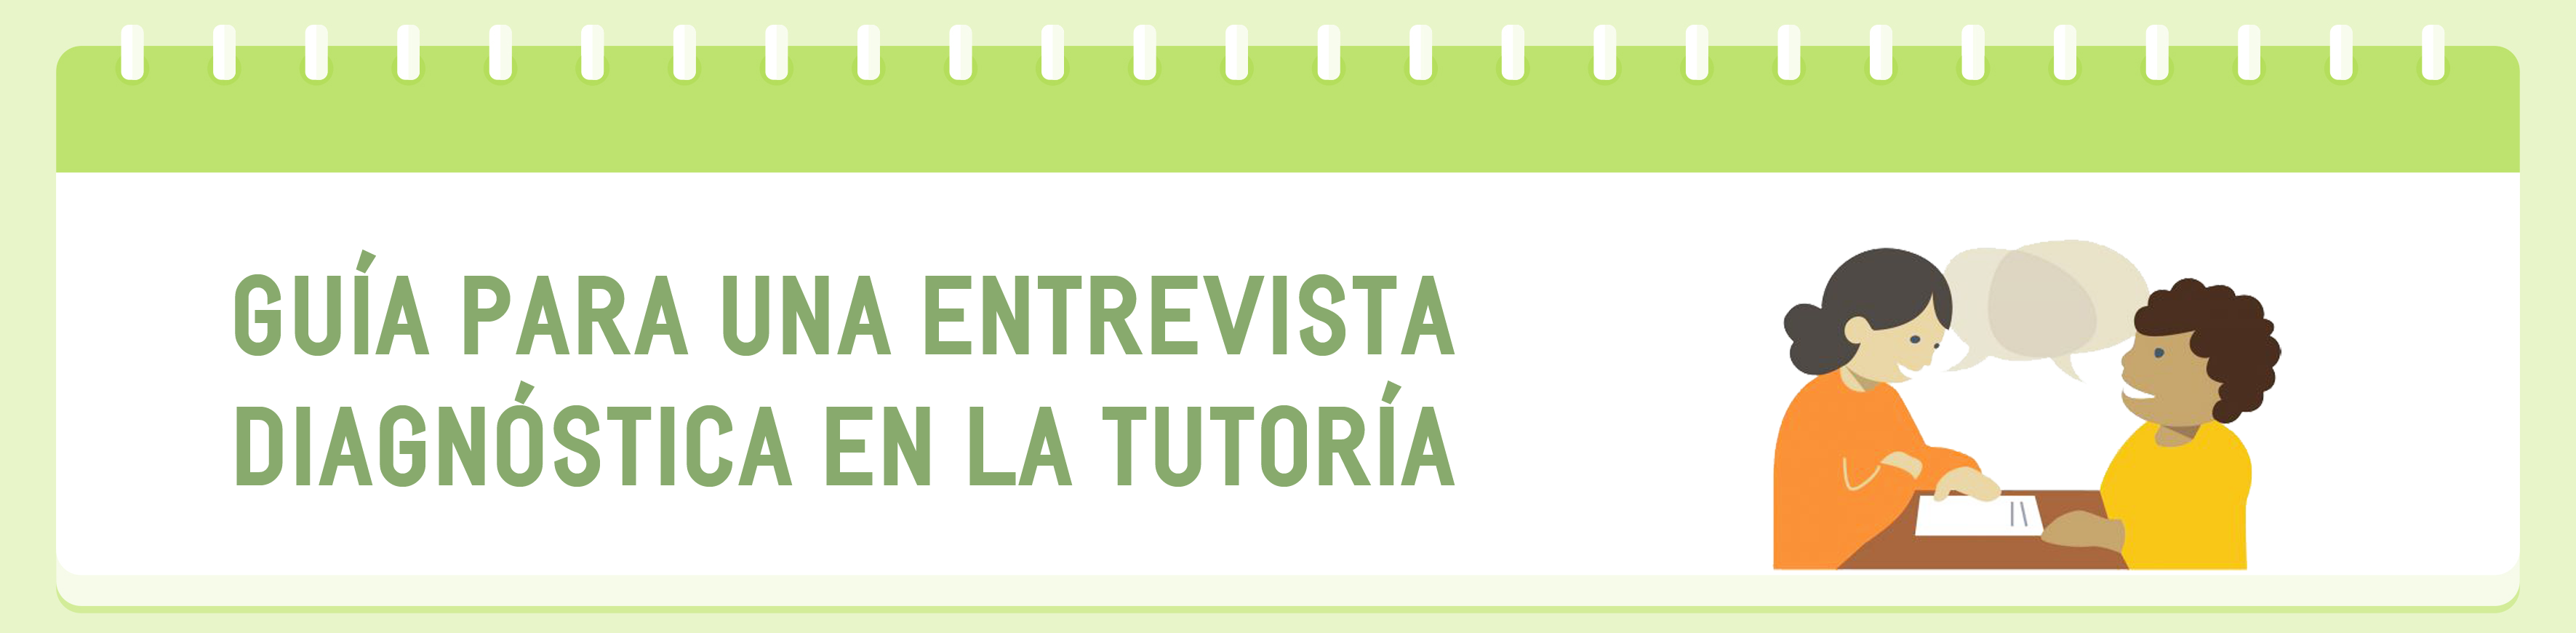 guia_entrevista_diagnostica_tutoria.png